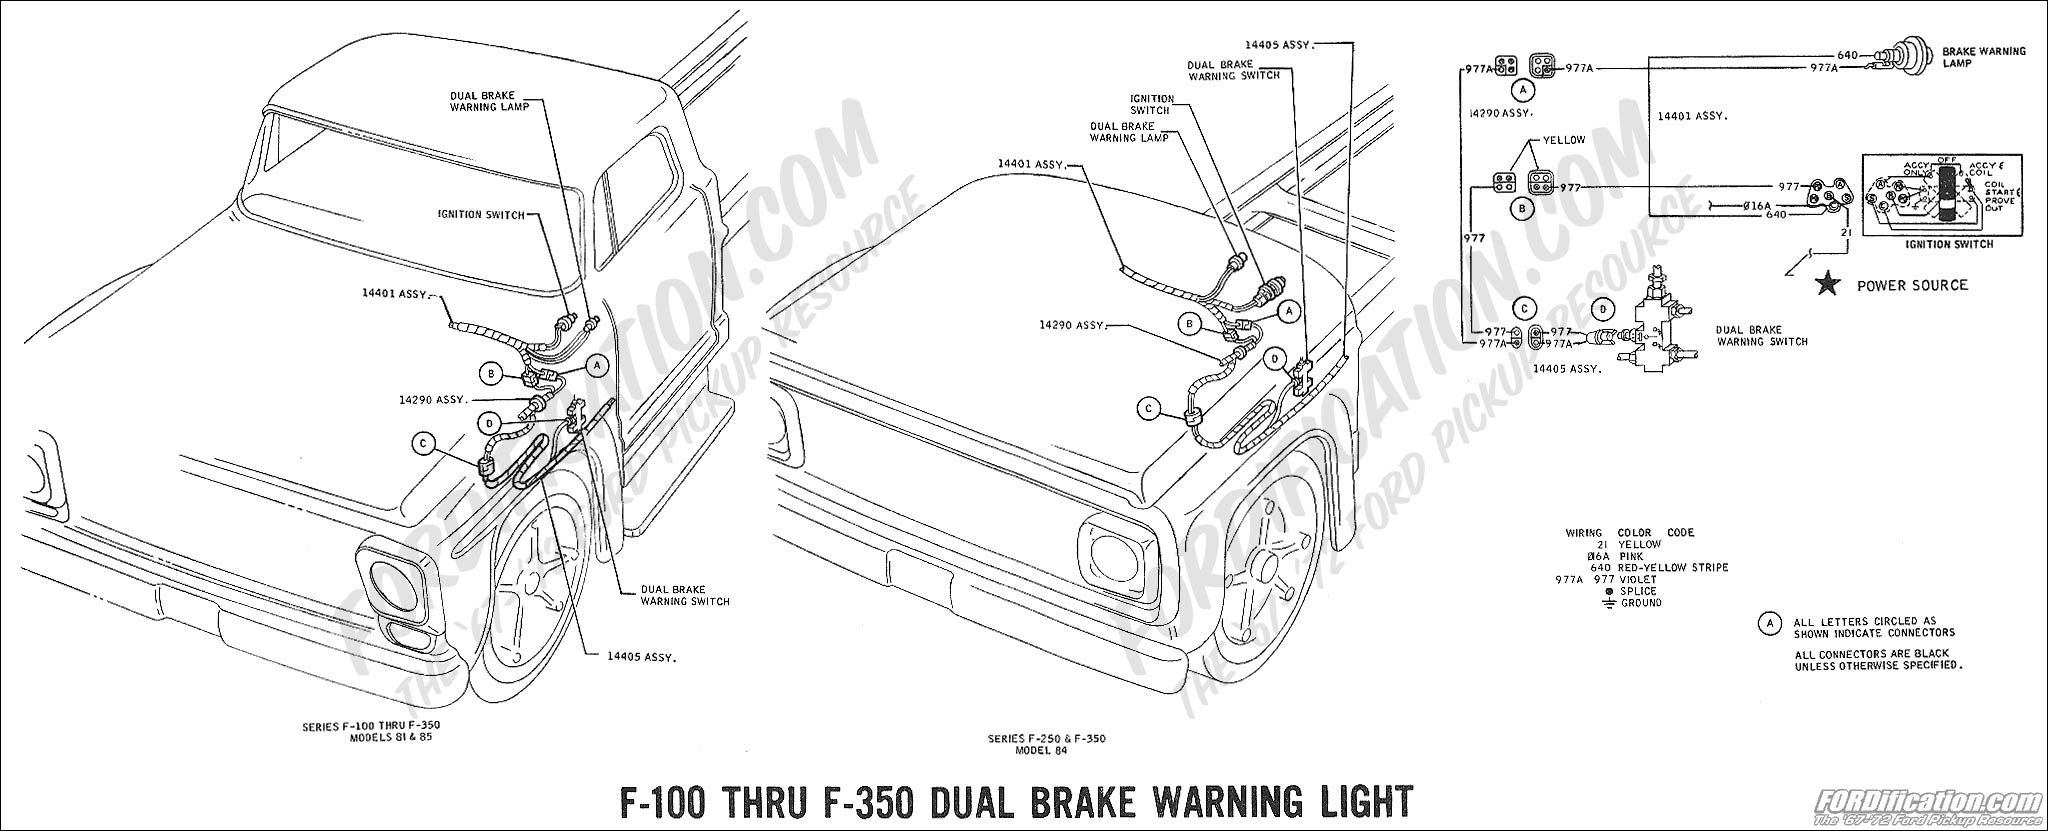 72 ford f250 wiring diagram 2005 honda accord speaker f 250 ignition get free image